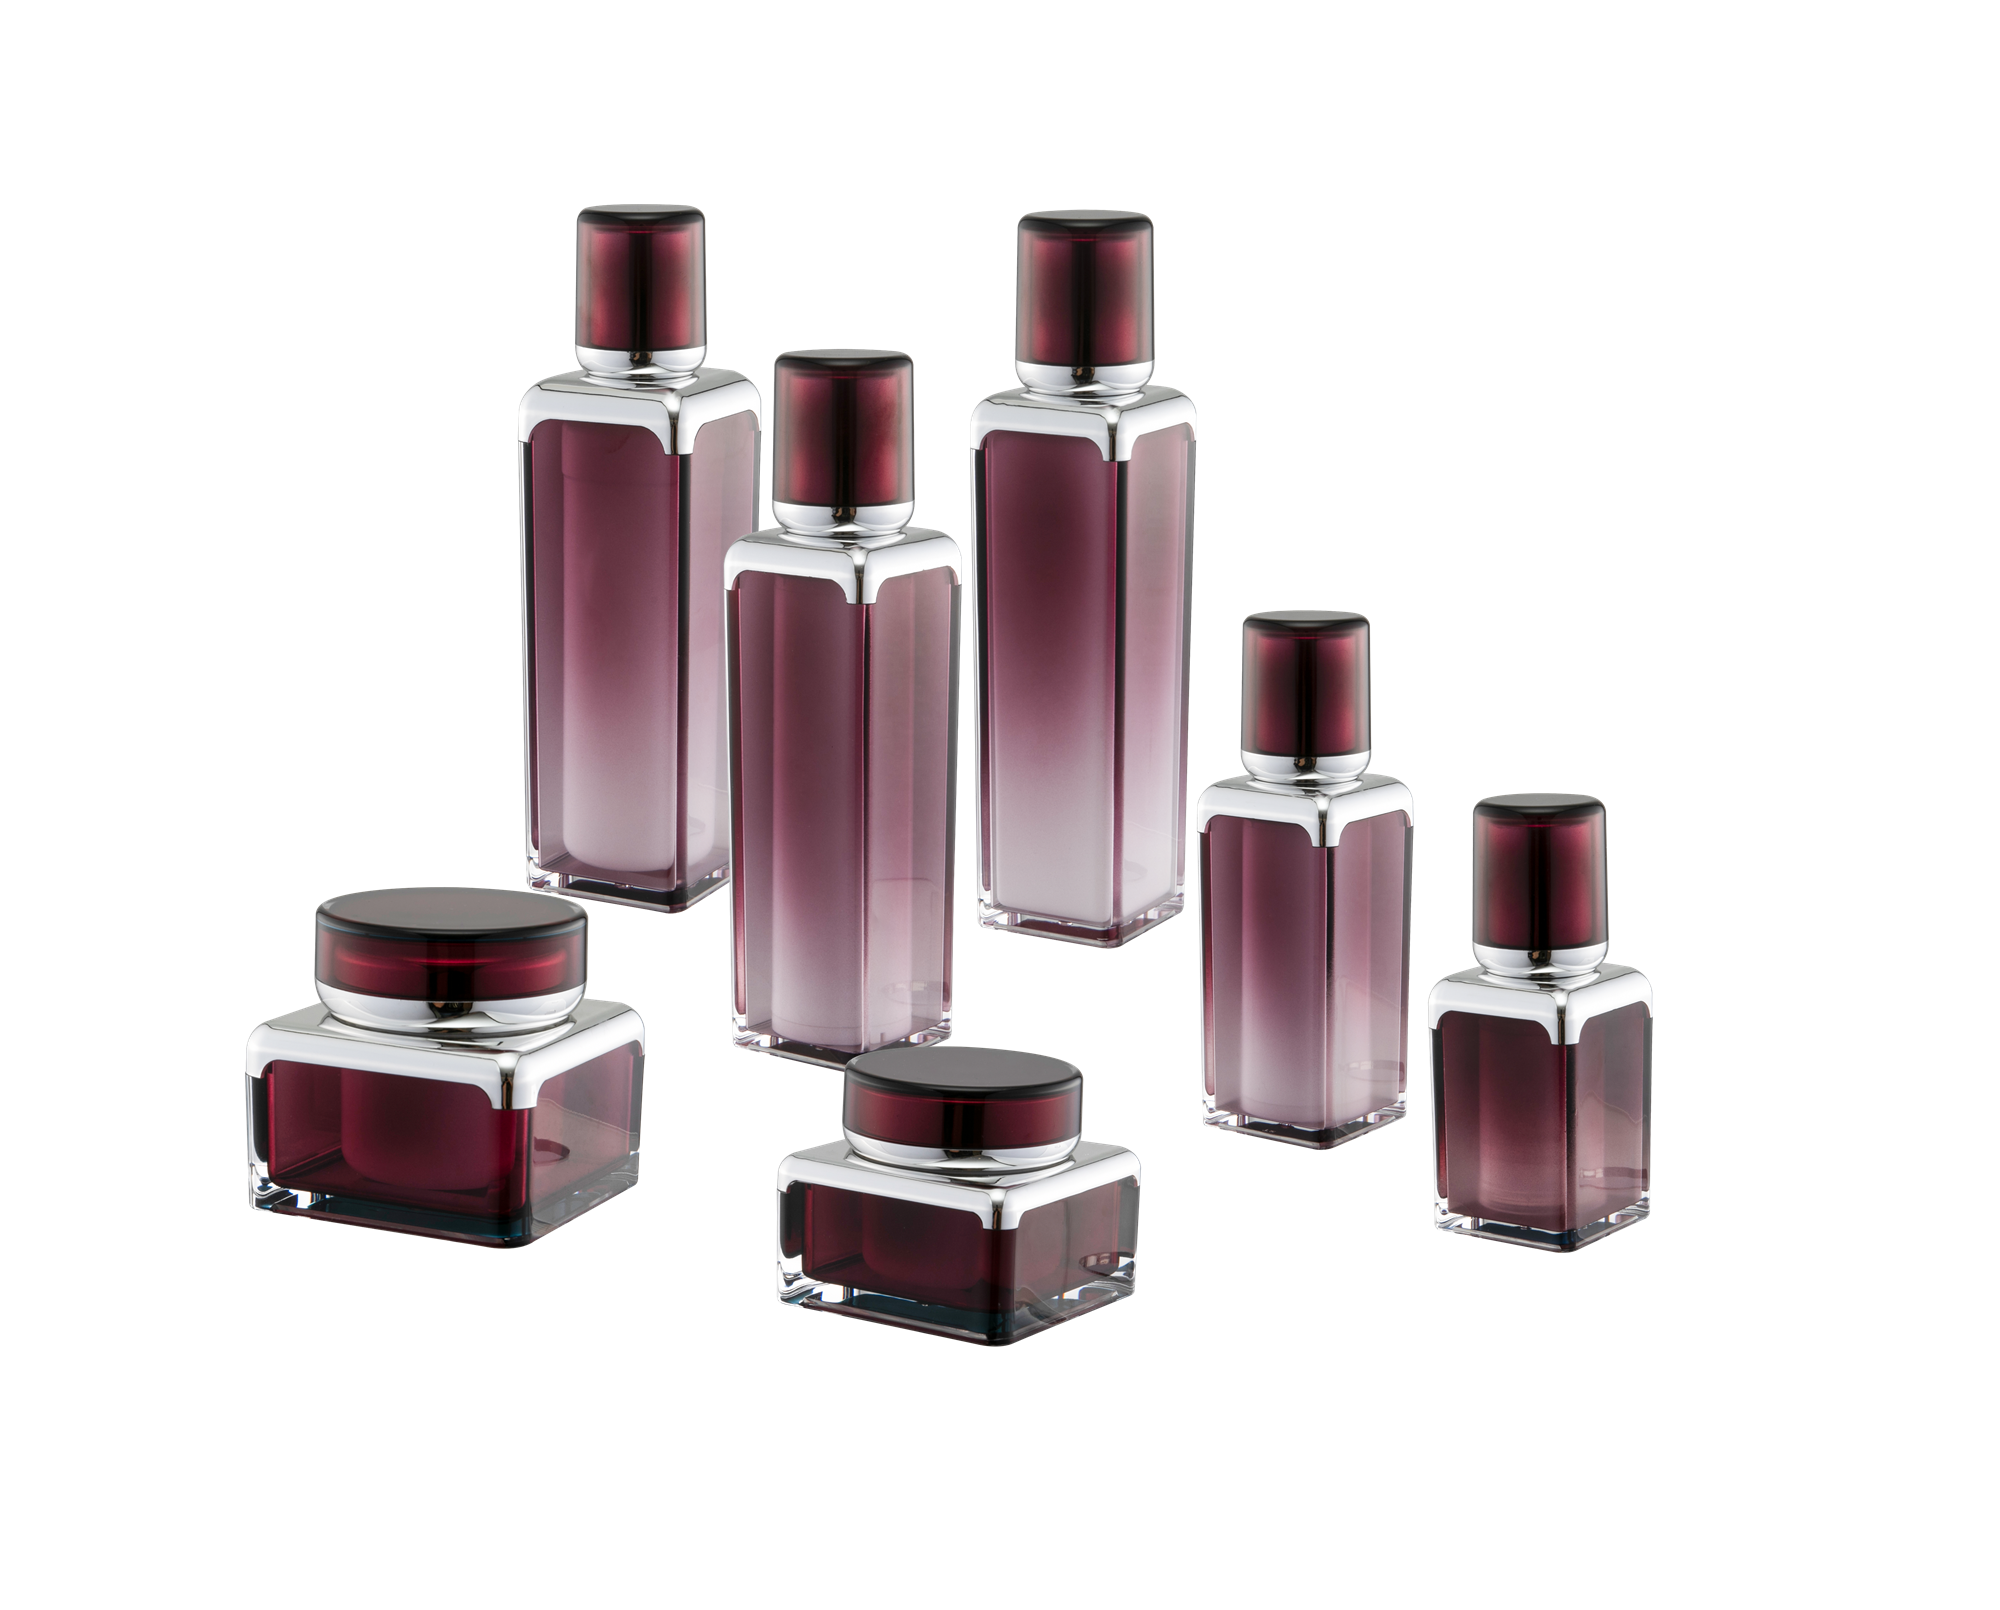 KR-4001 Packaging cosmetic jars acrylic bottle and jar new bottle set for cosmetic